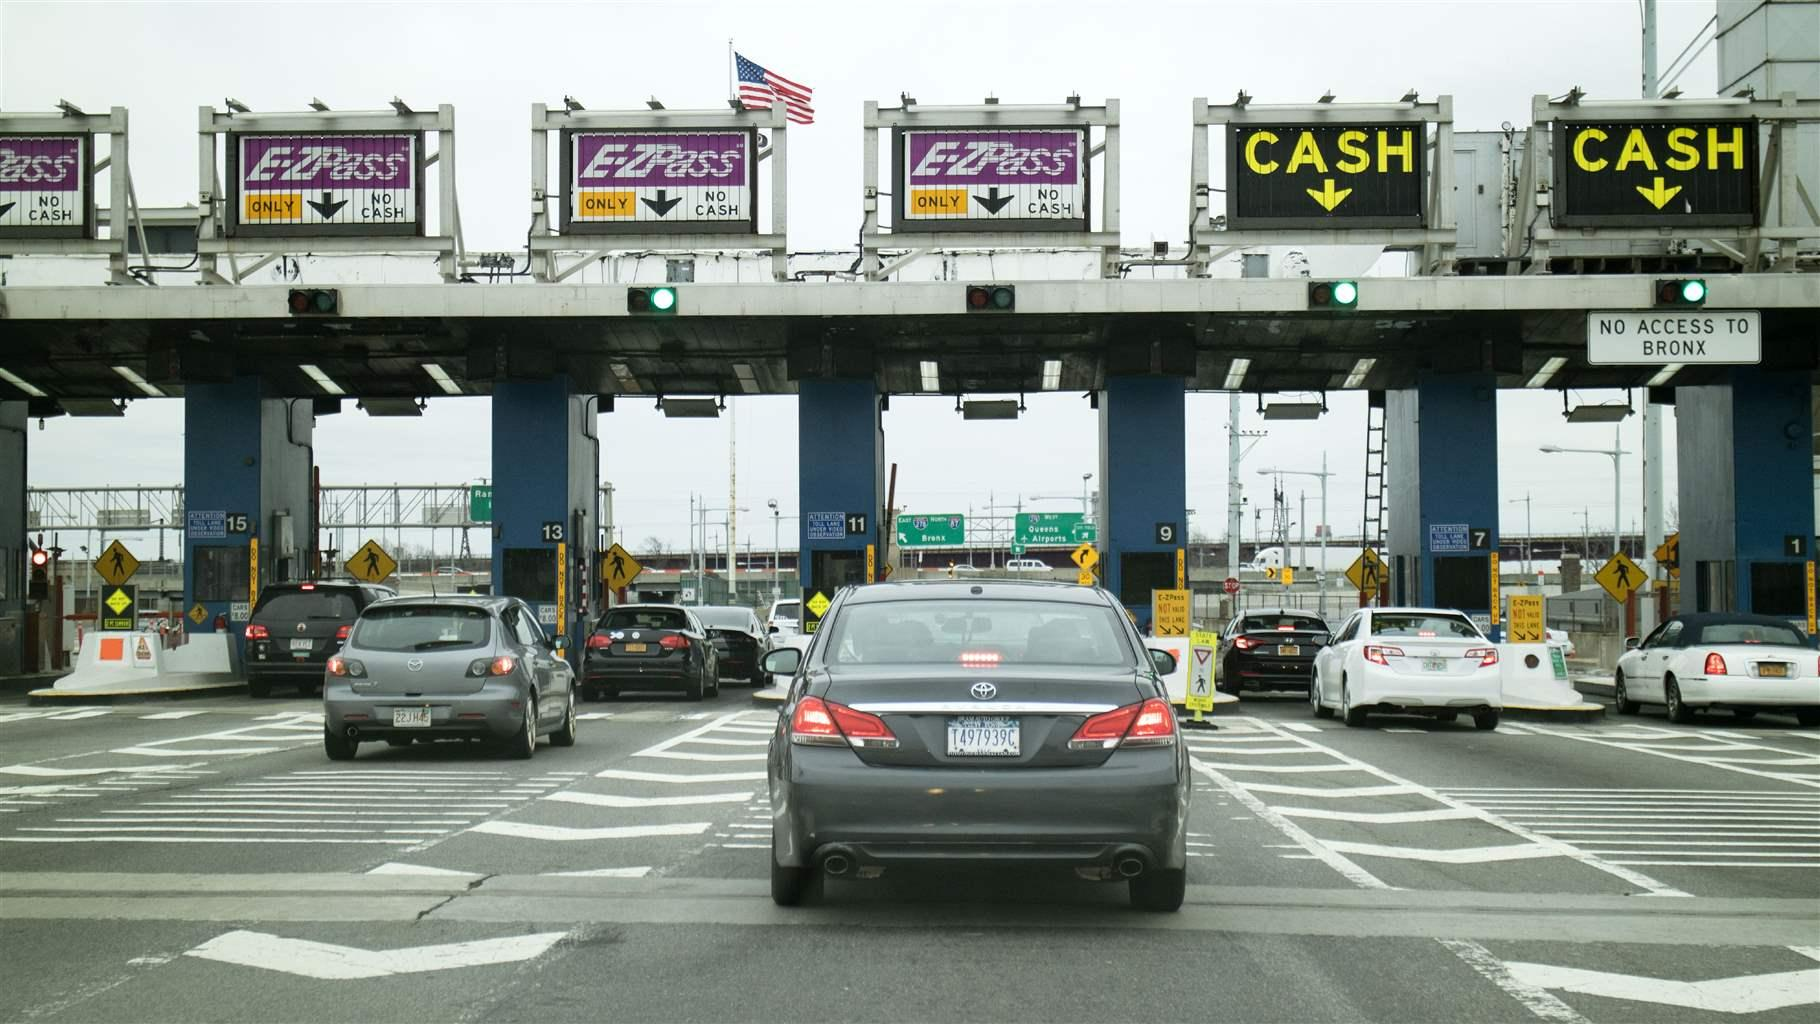 Pay Tolls Online Nyc >> The Cost Of That Toll Depends On Your E Zpass The Pew